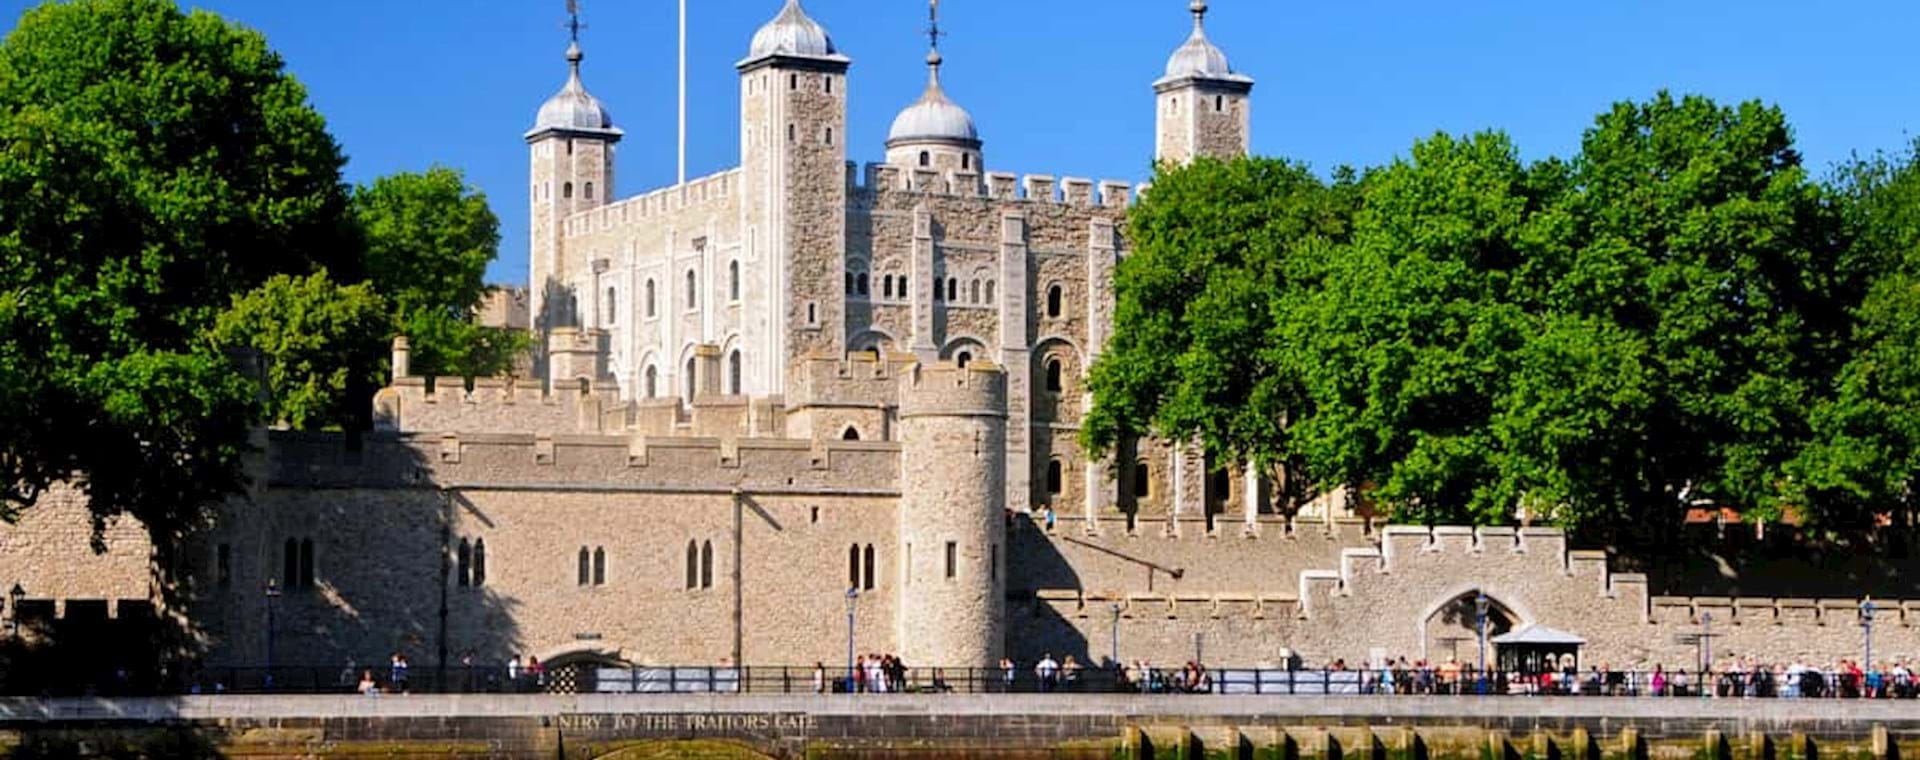 Tower of London view from the famous Thames River